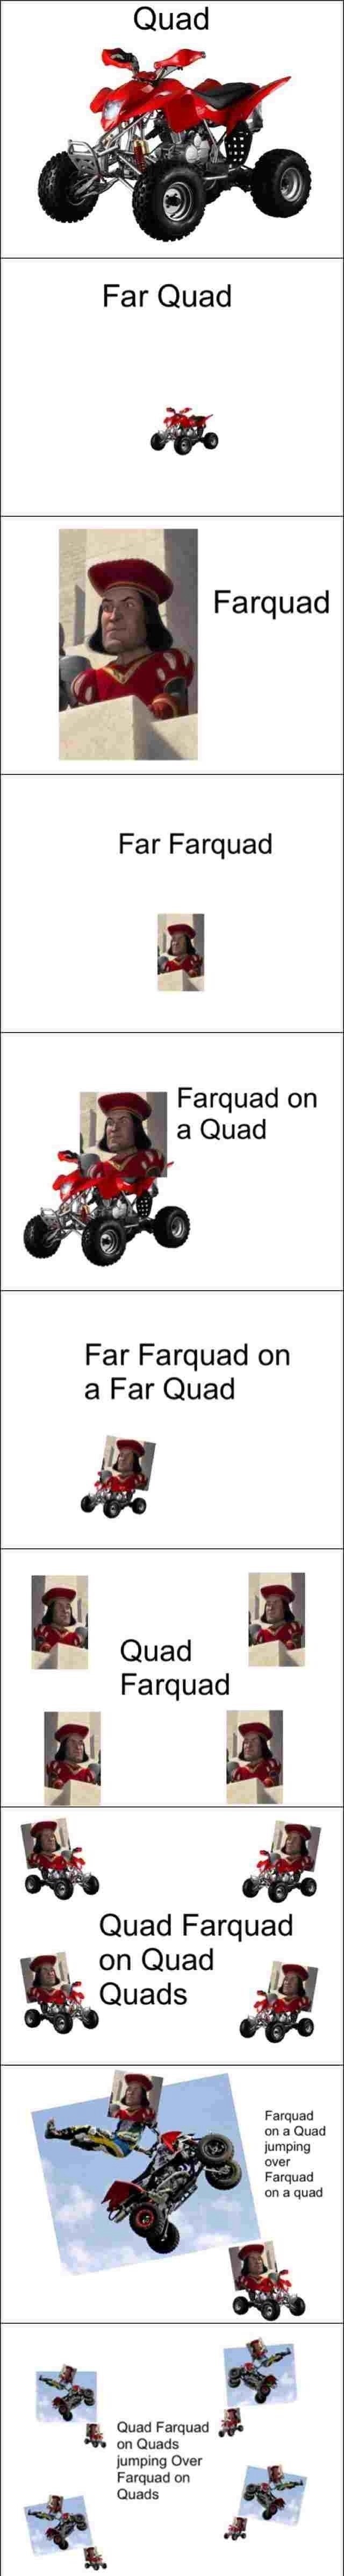 Quad Meme The gallery for...